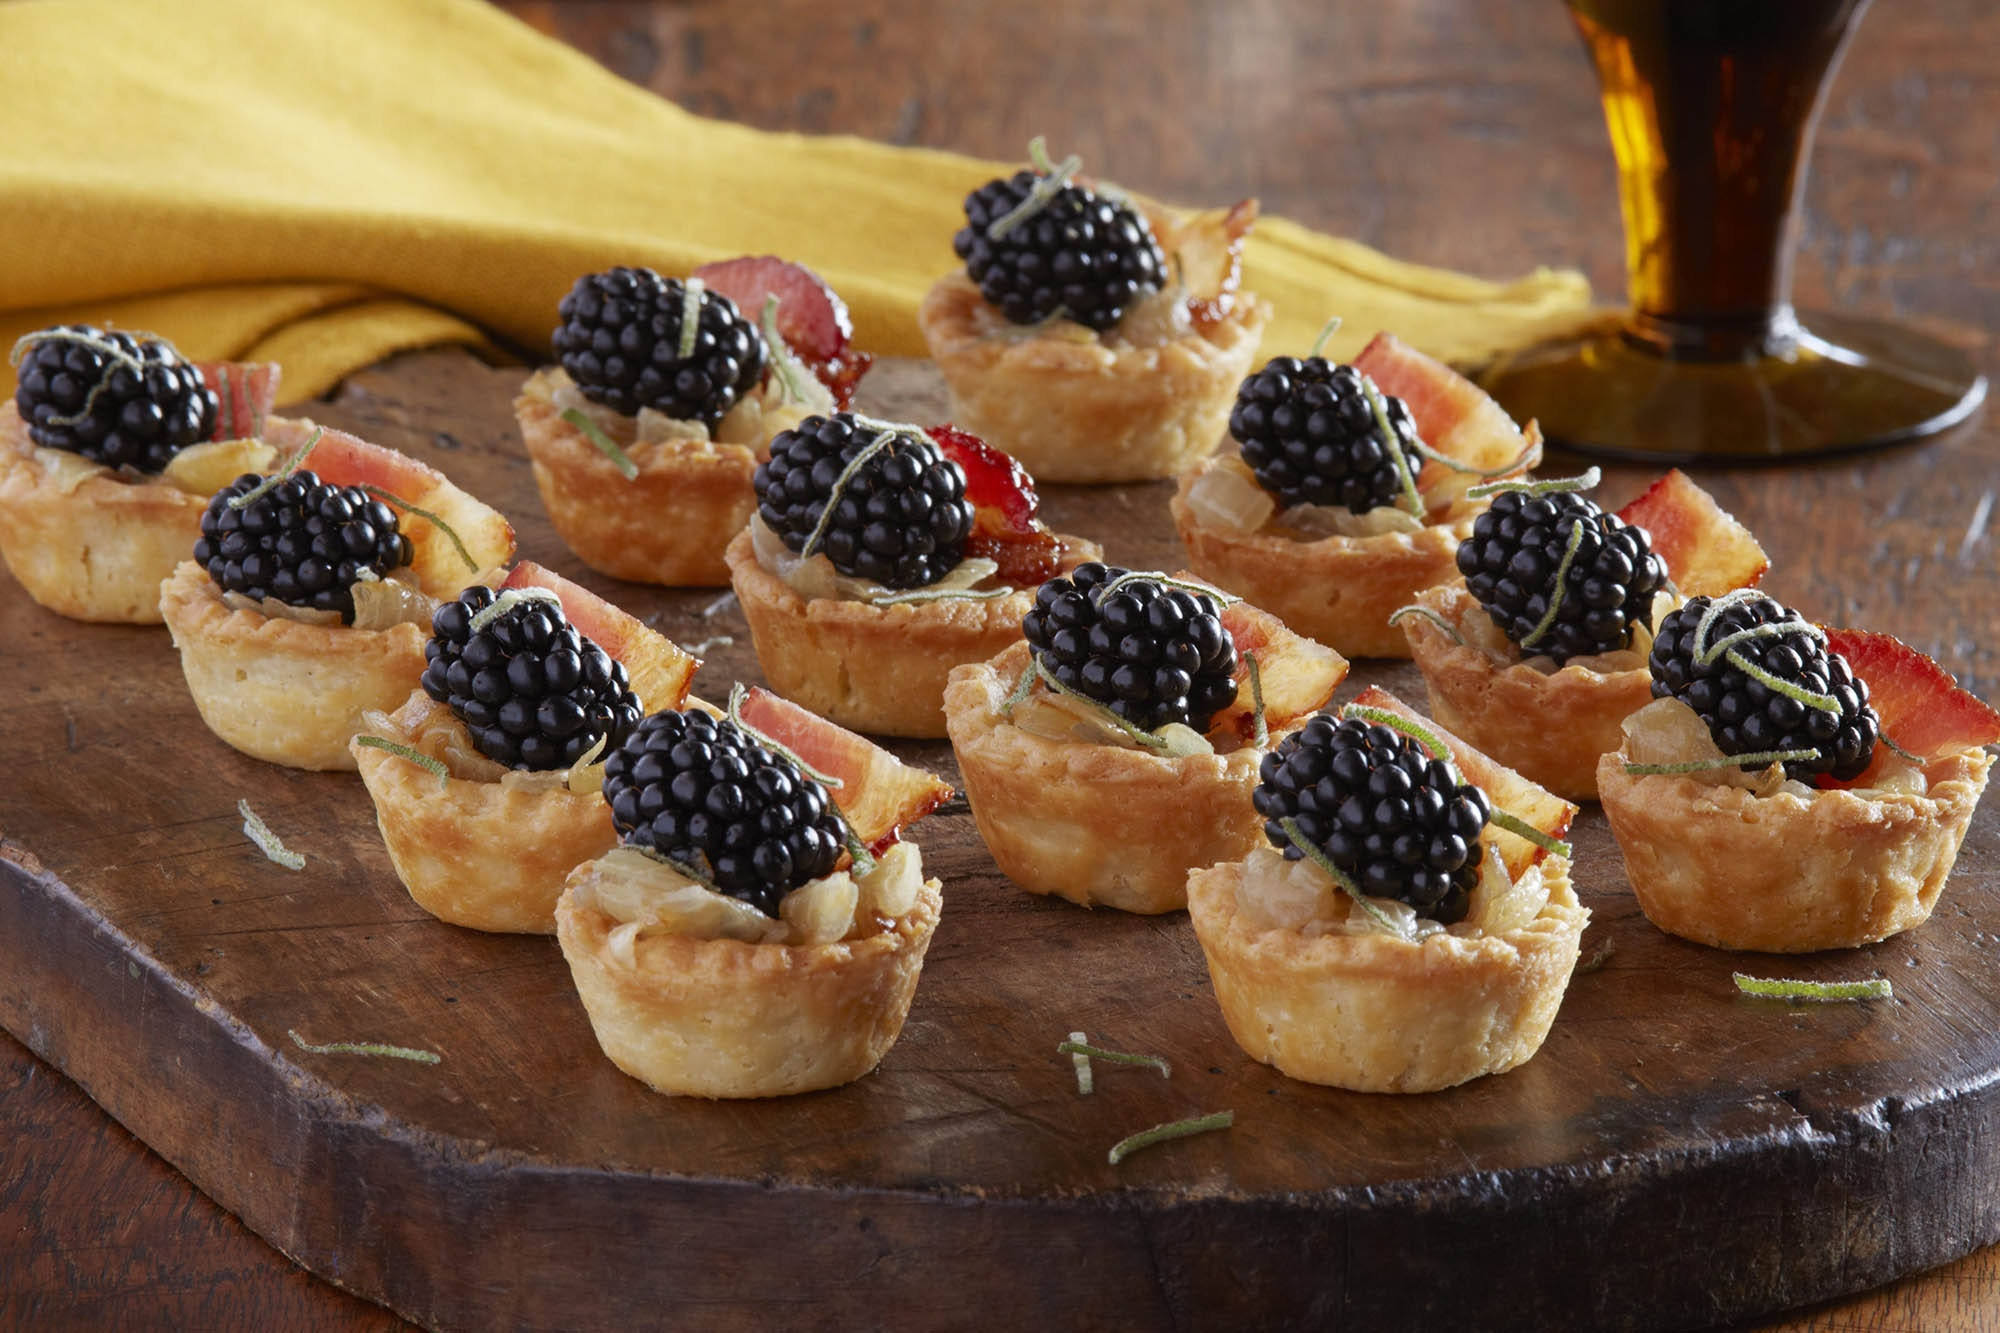 Small blackberry and bacon caramelized onion tartlets